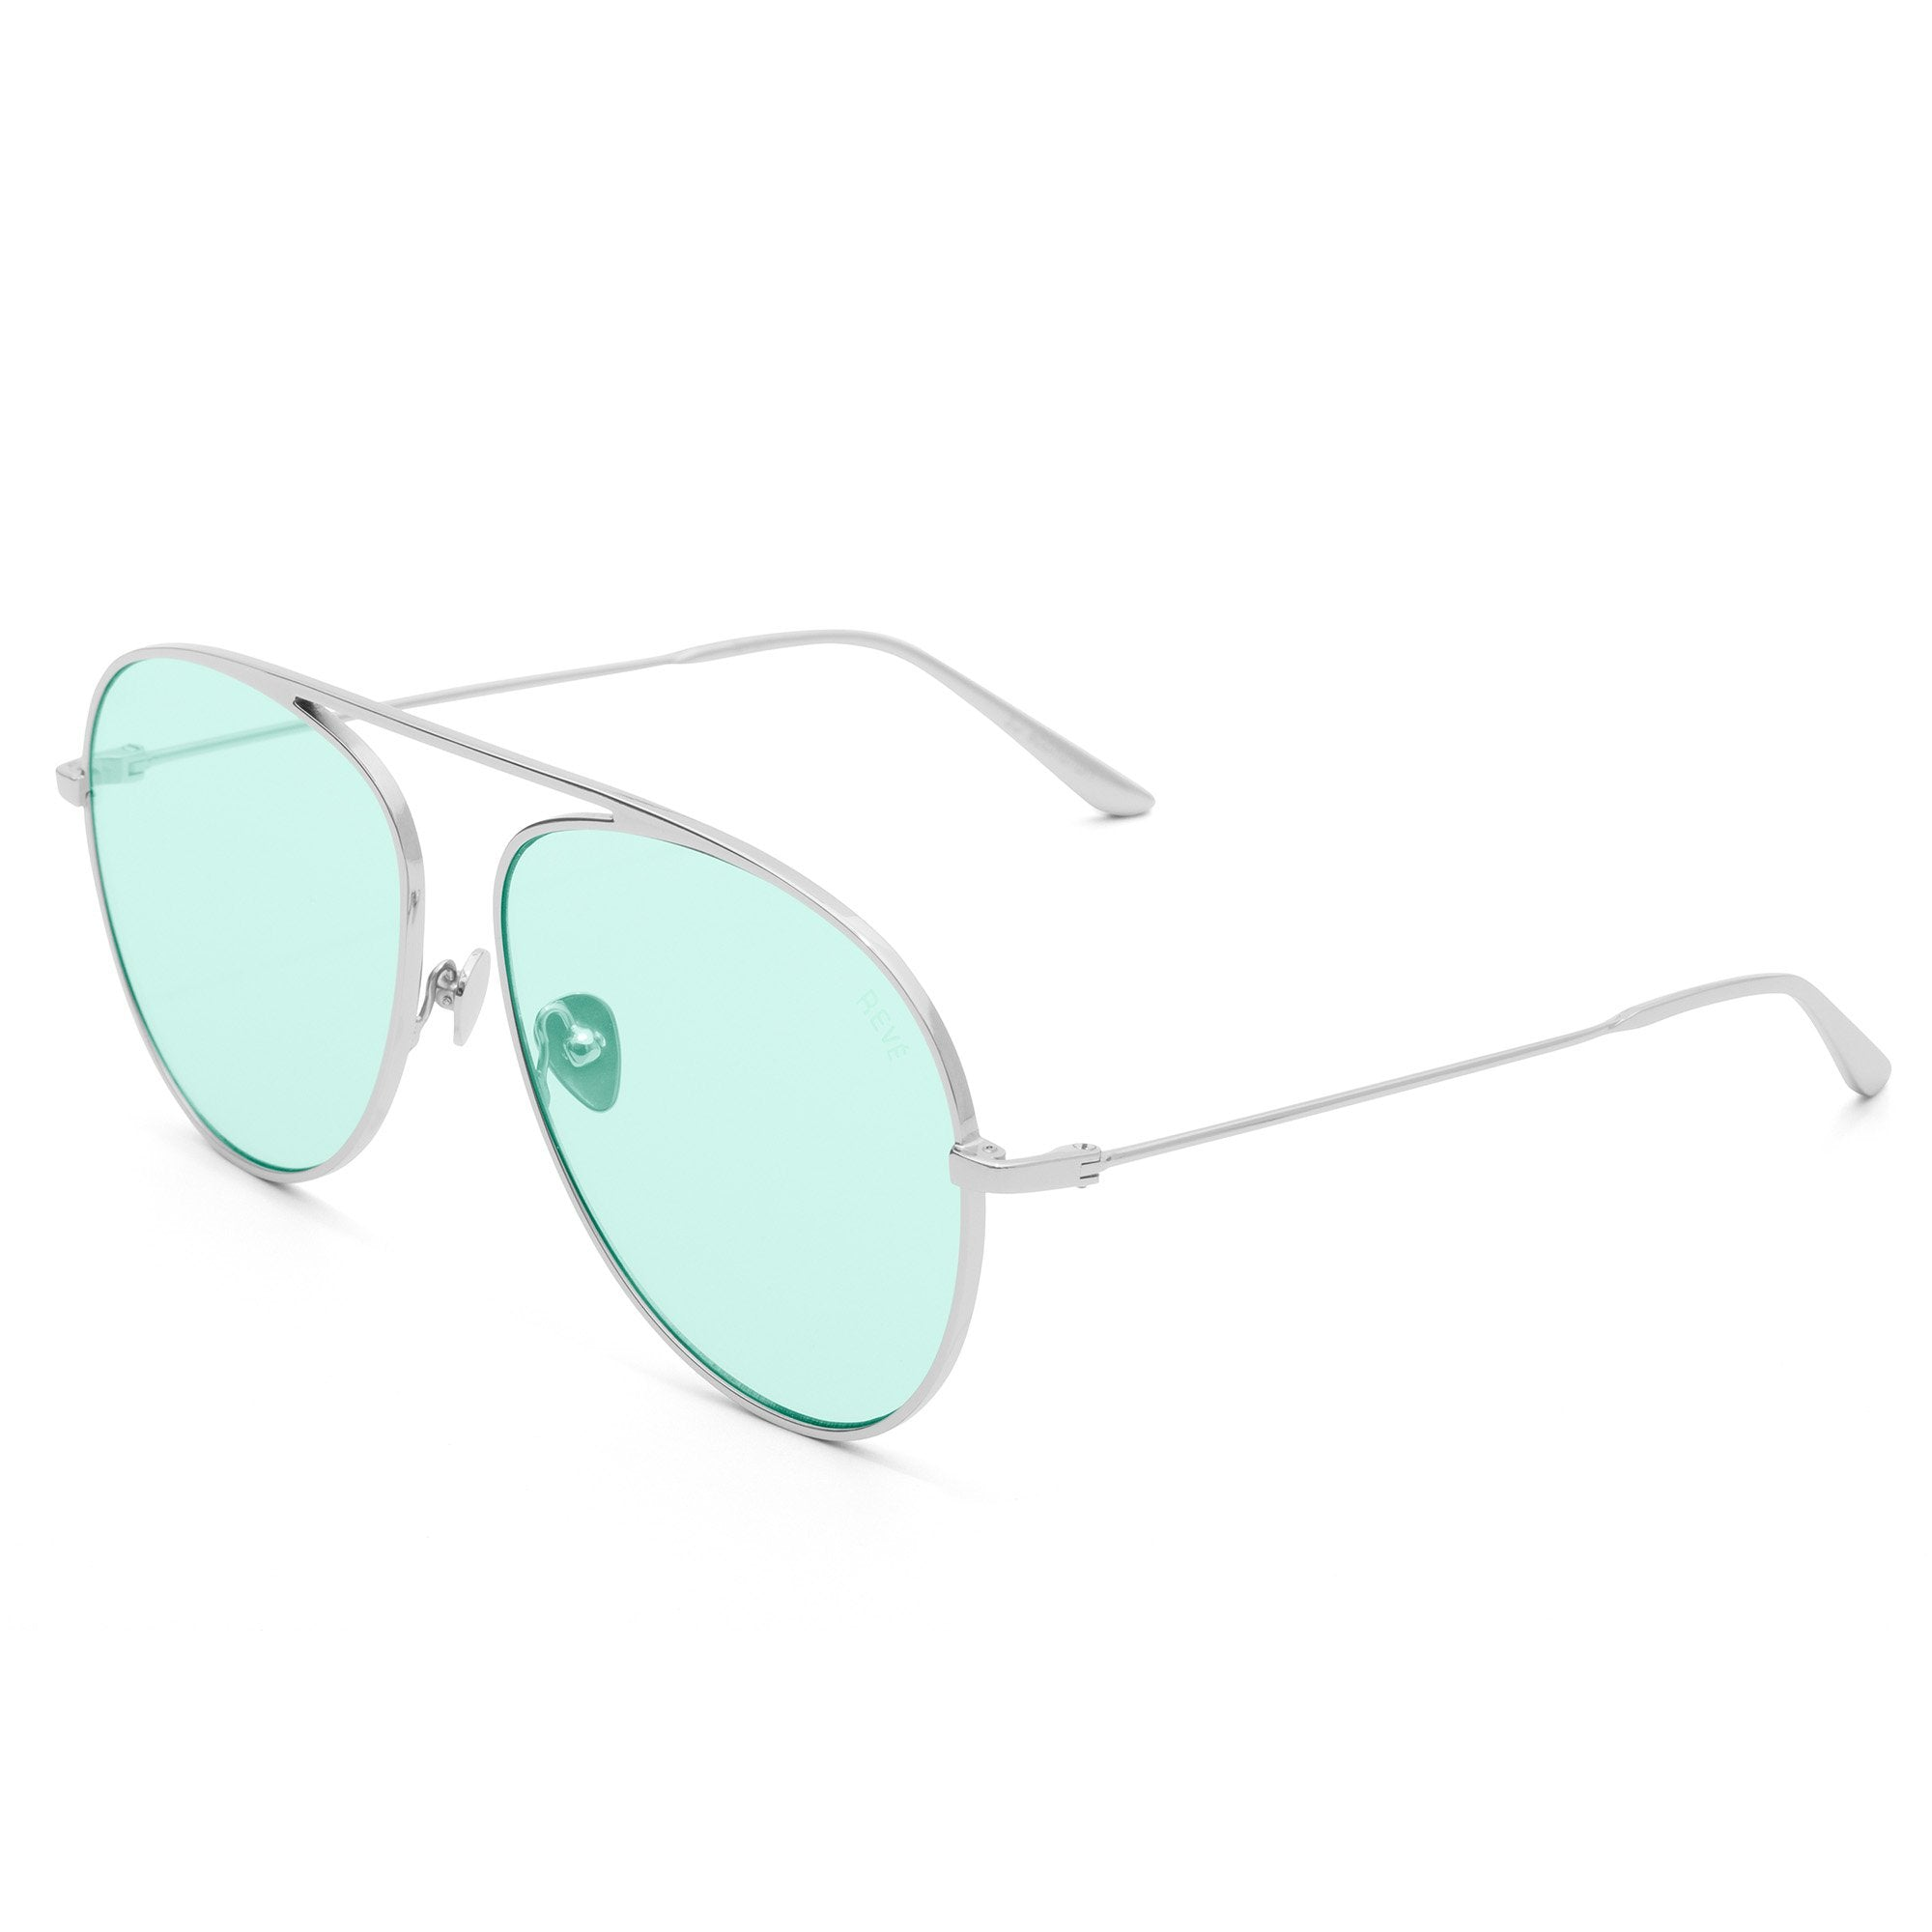 REVE by RENE jellybean sunglasses | green sunglasses